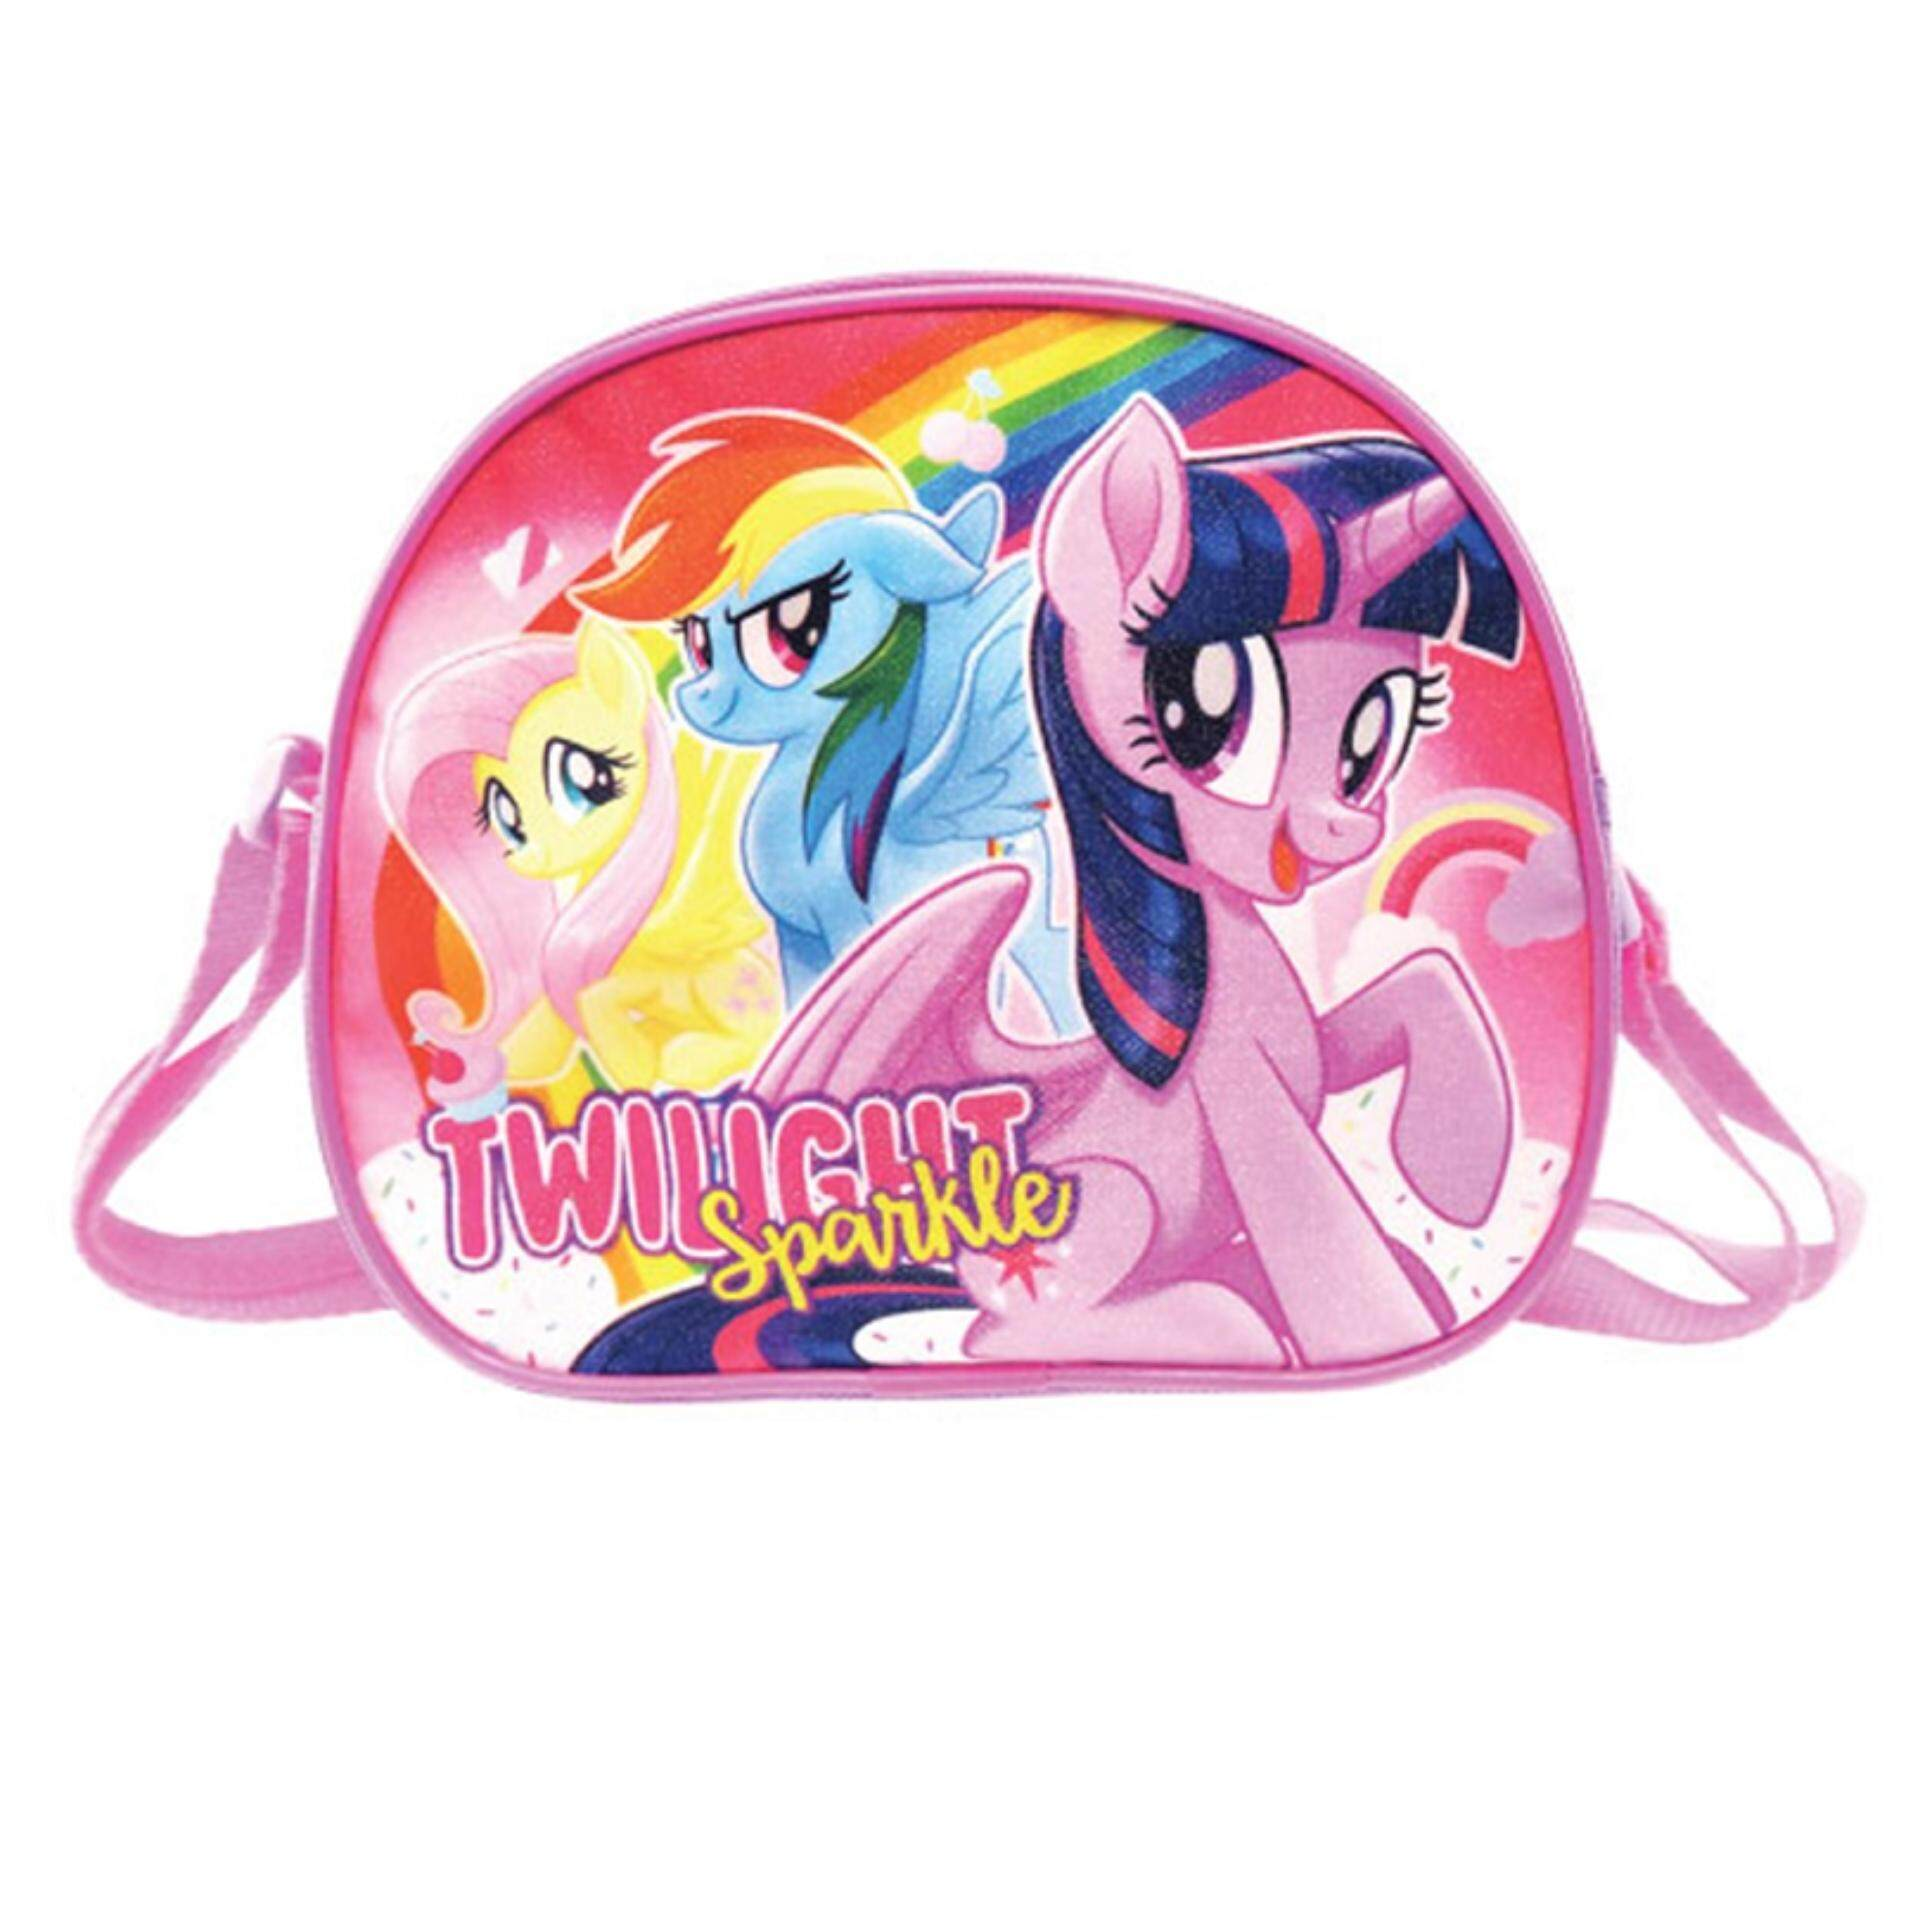 Komic Produk Terbaru Phillipe Joordan North Tas Backpack Wanita Hijau Canvas My Little Pony Oval Sling Bag Twilight Sparkle